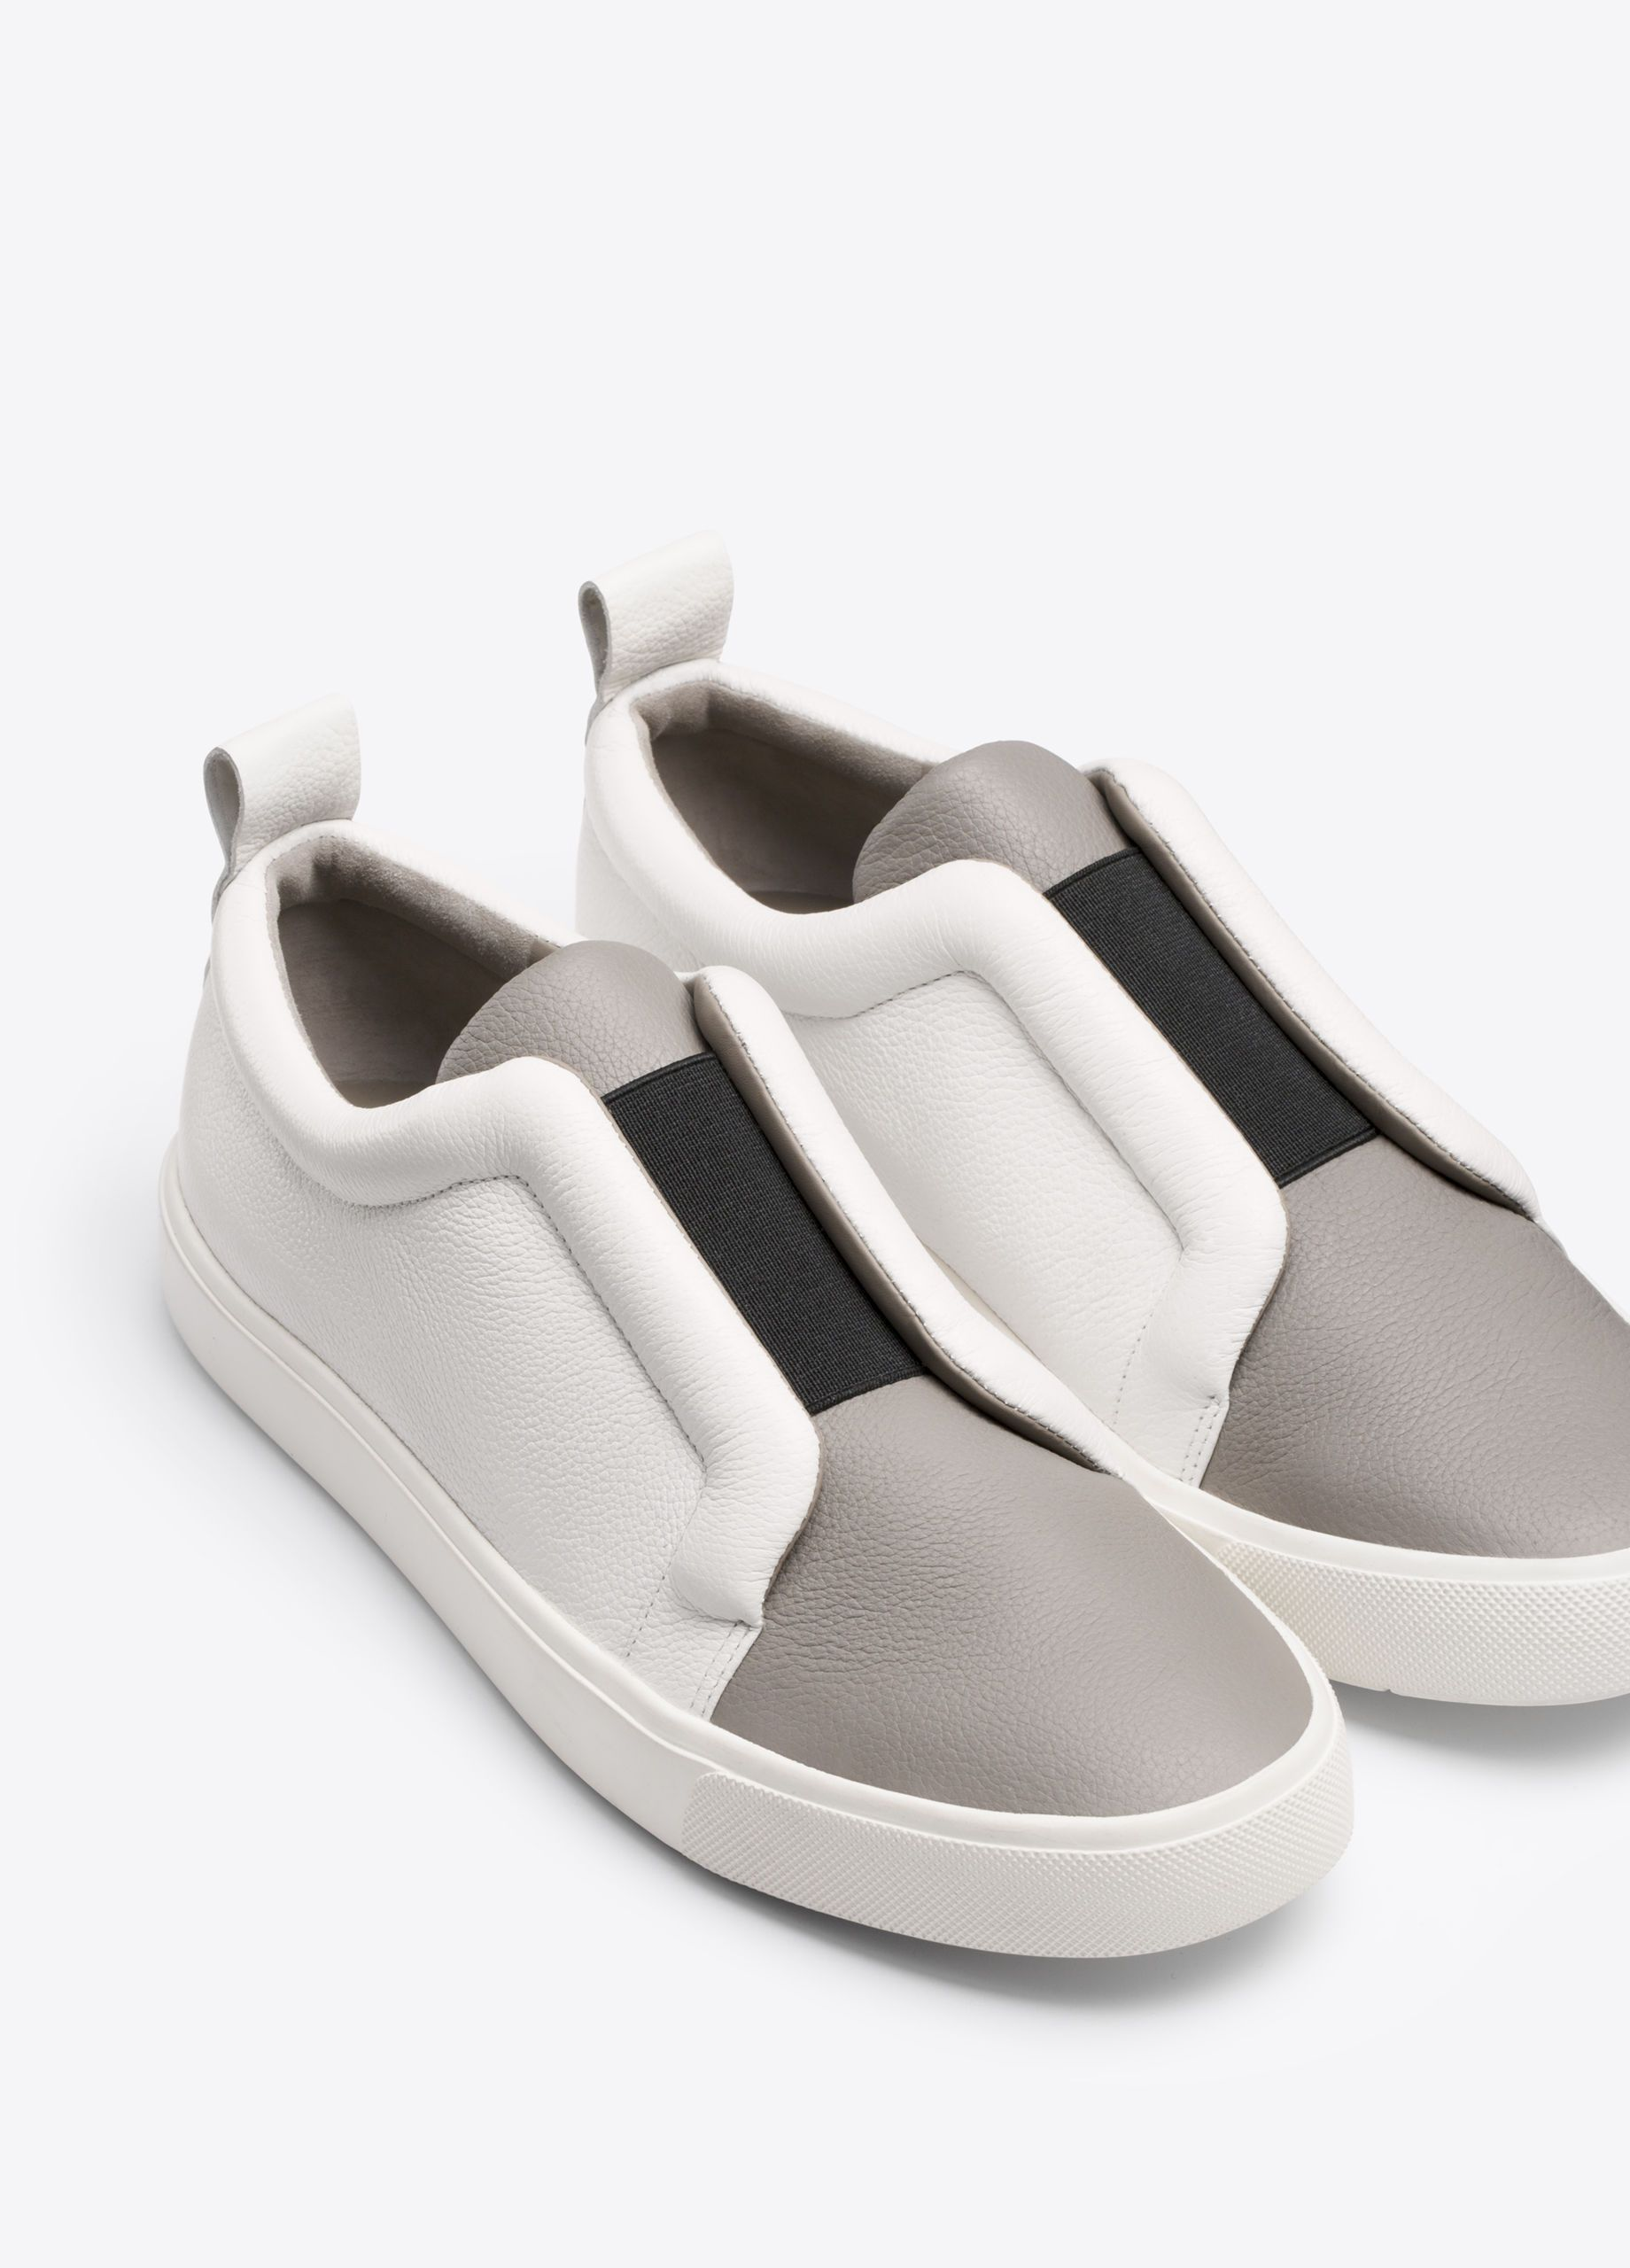 Caden Leather Sneaker for Women | Vince | Zapatos mujer